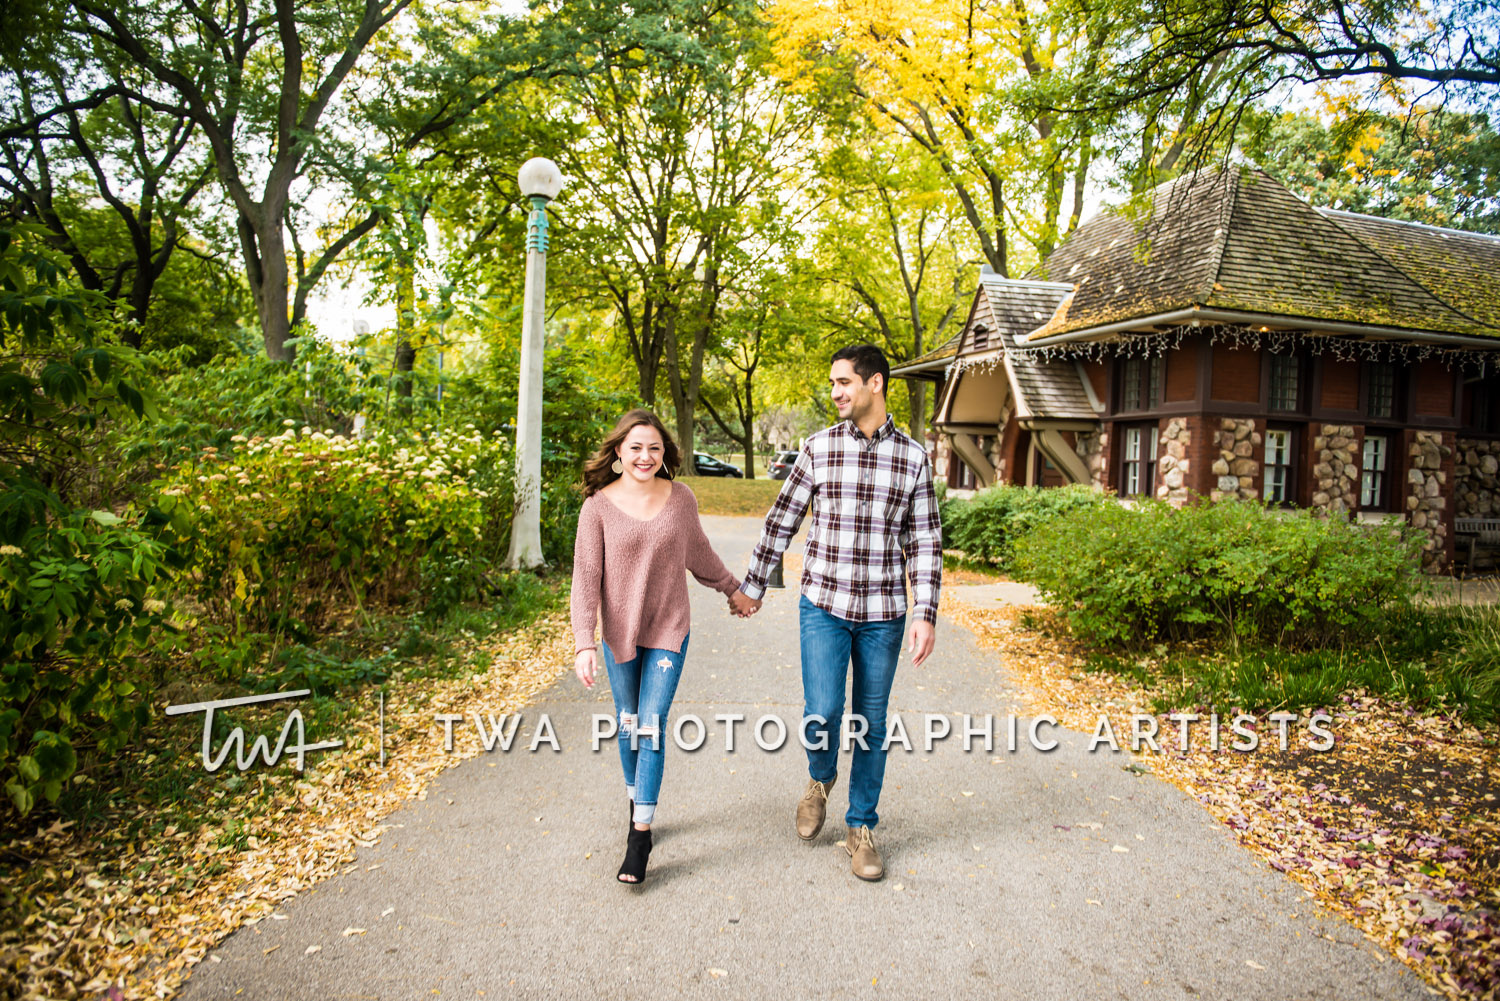 Chicago-Wedding-Photographer-TWA-Photographic-Artists-Lincoln-Park_Easterday_Siegel_LS-018